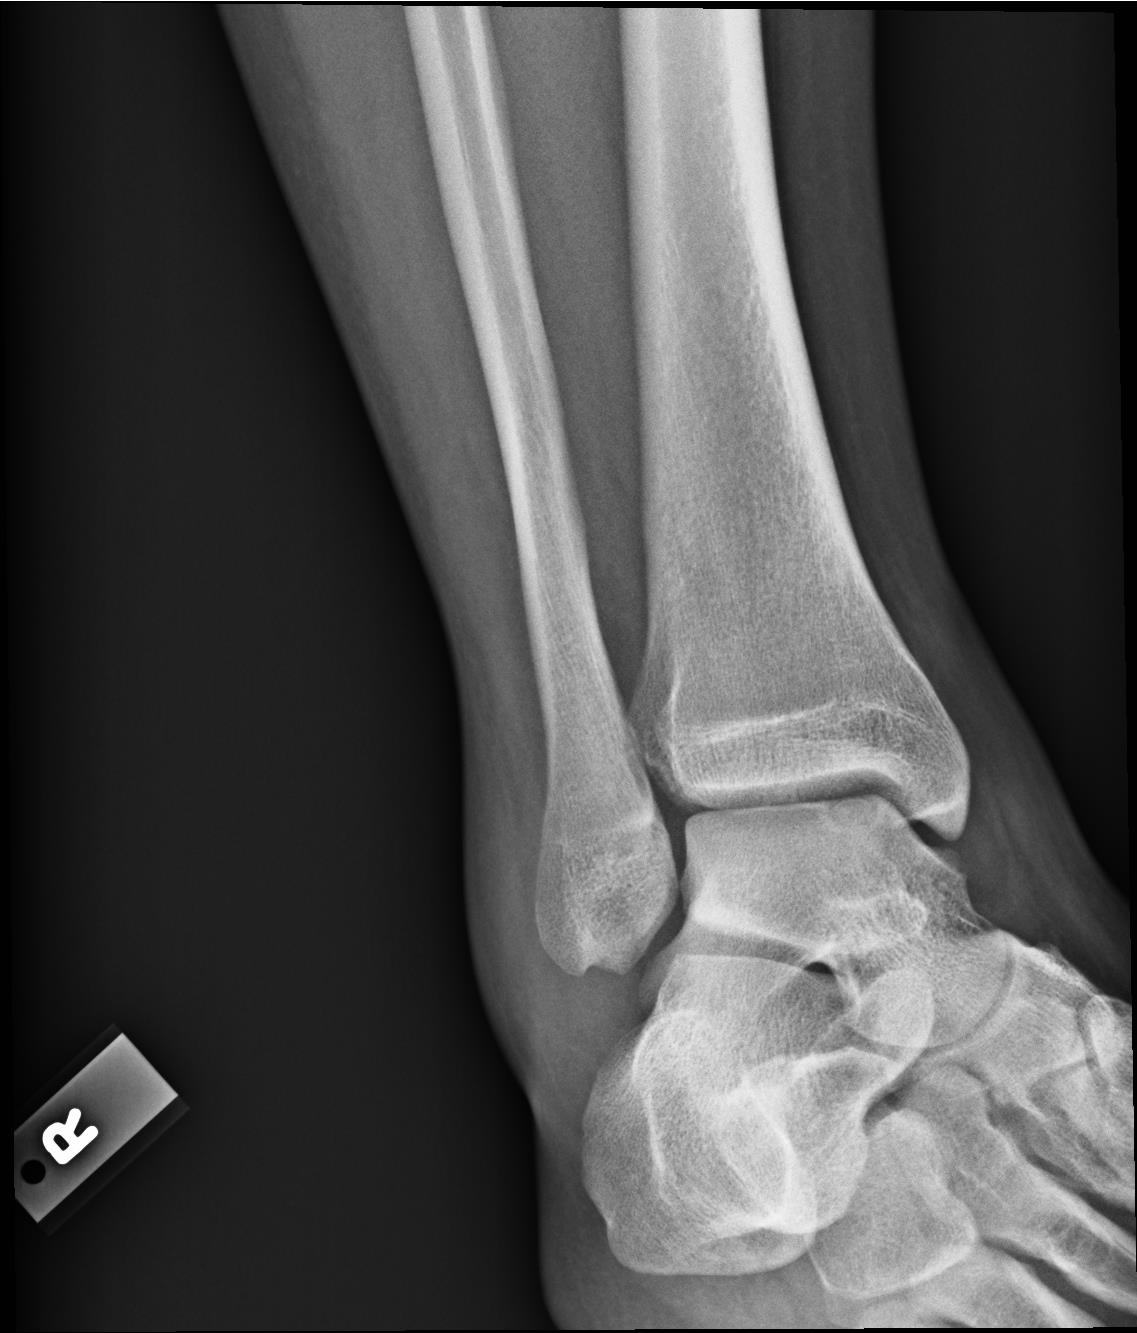 XRay - Mortise Right ankle